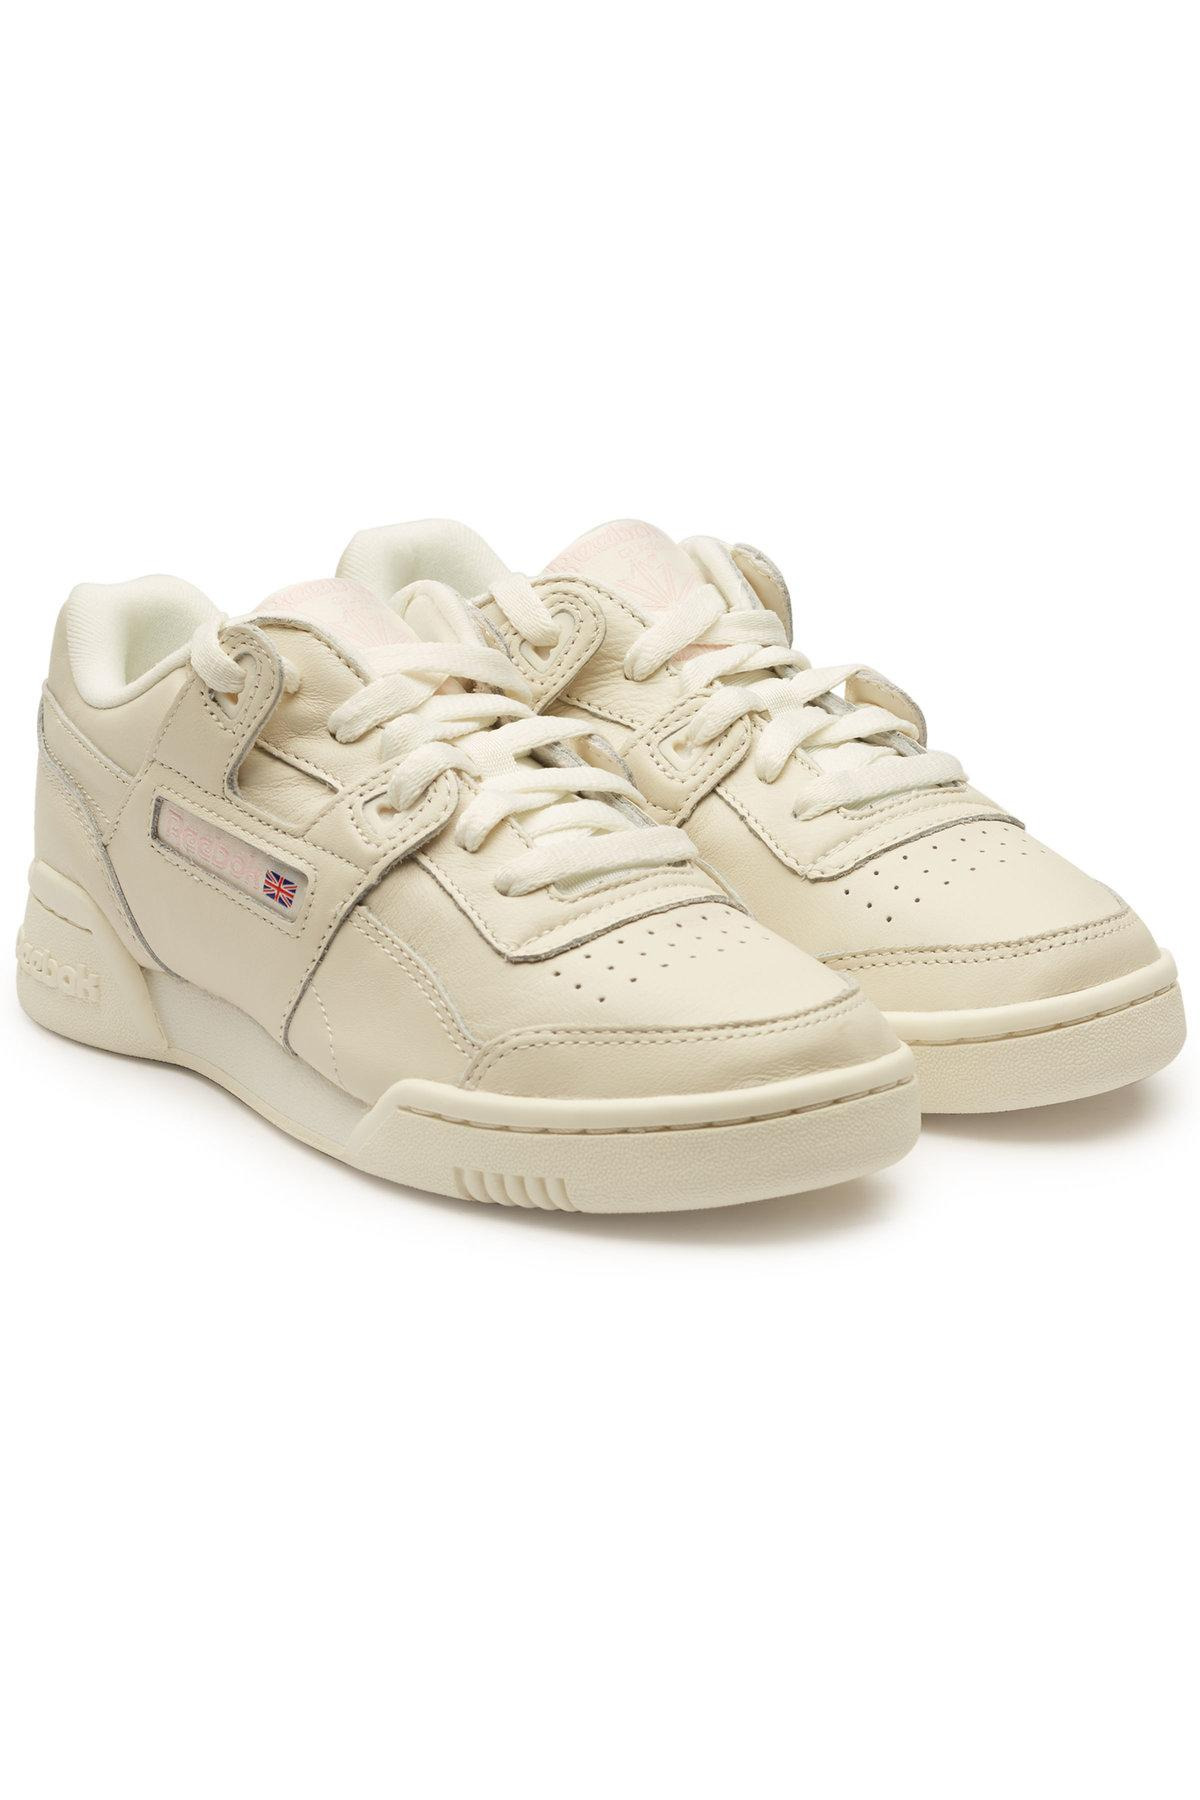 aaa2bf60171 Reebok Workout Lo Plus Leather Sneakers In White